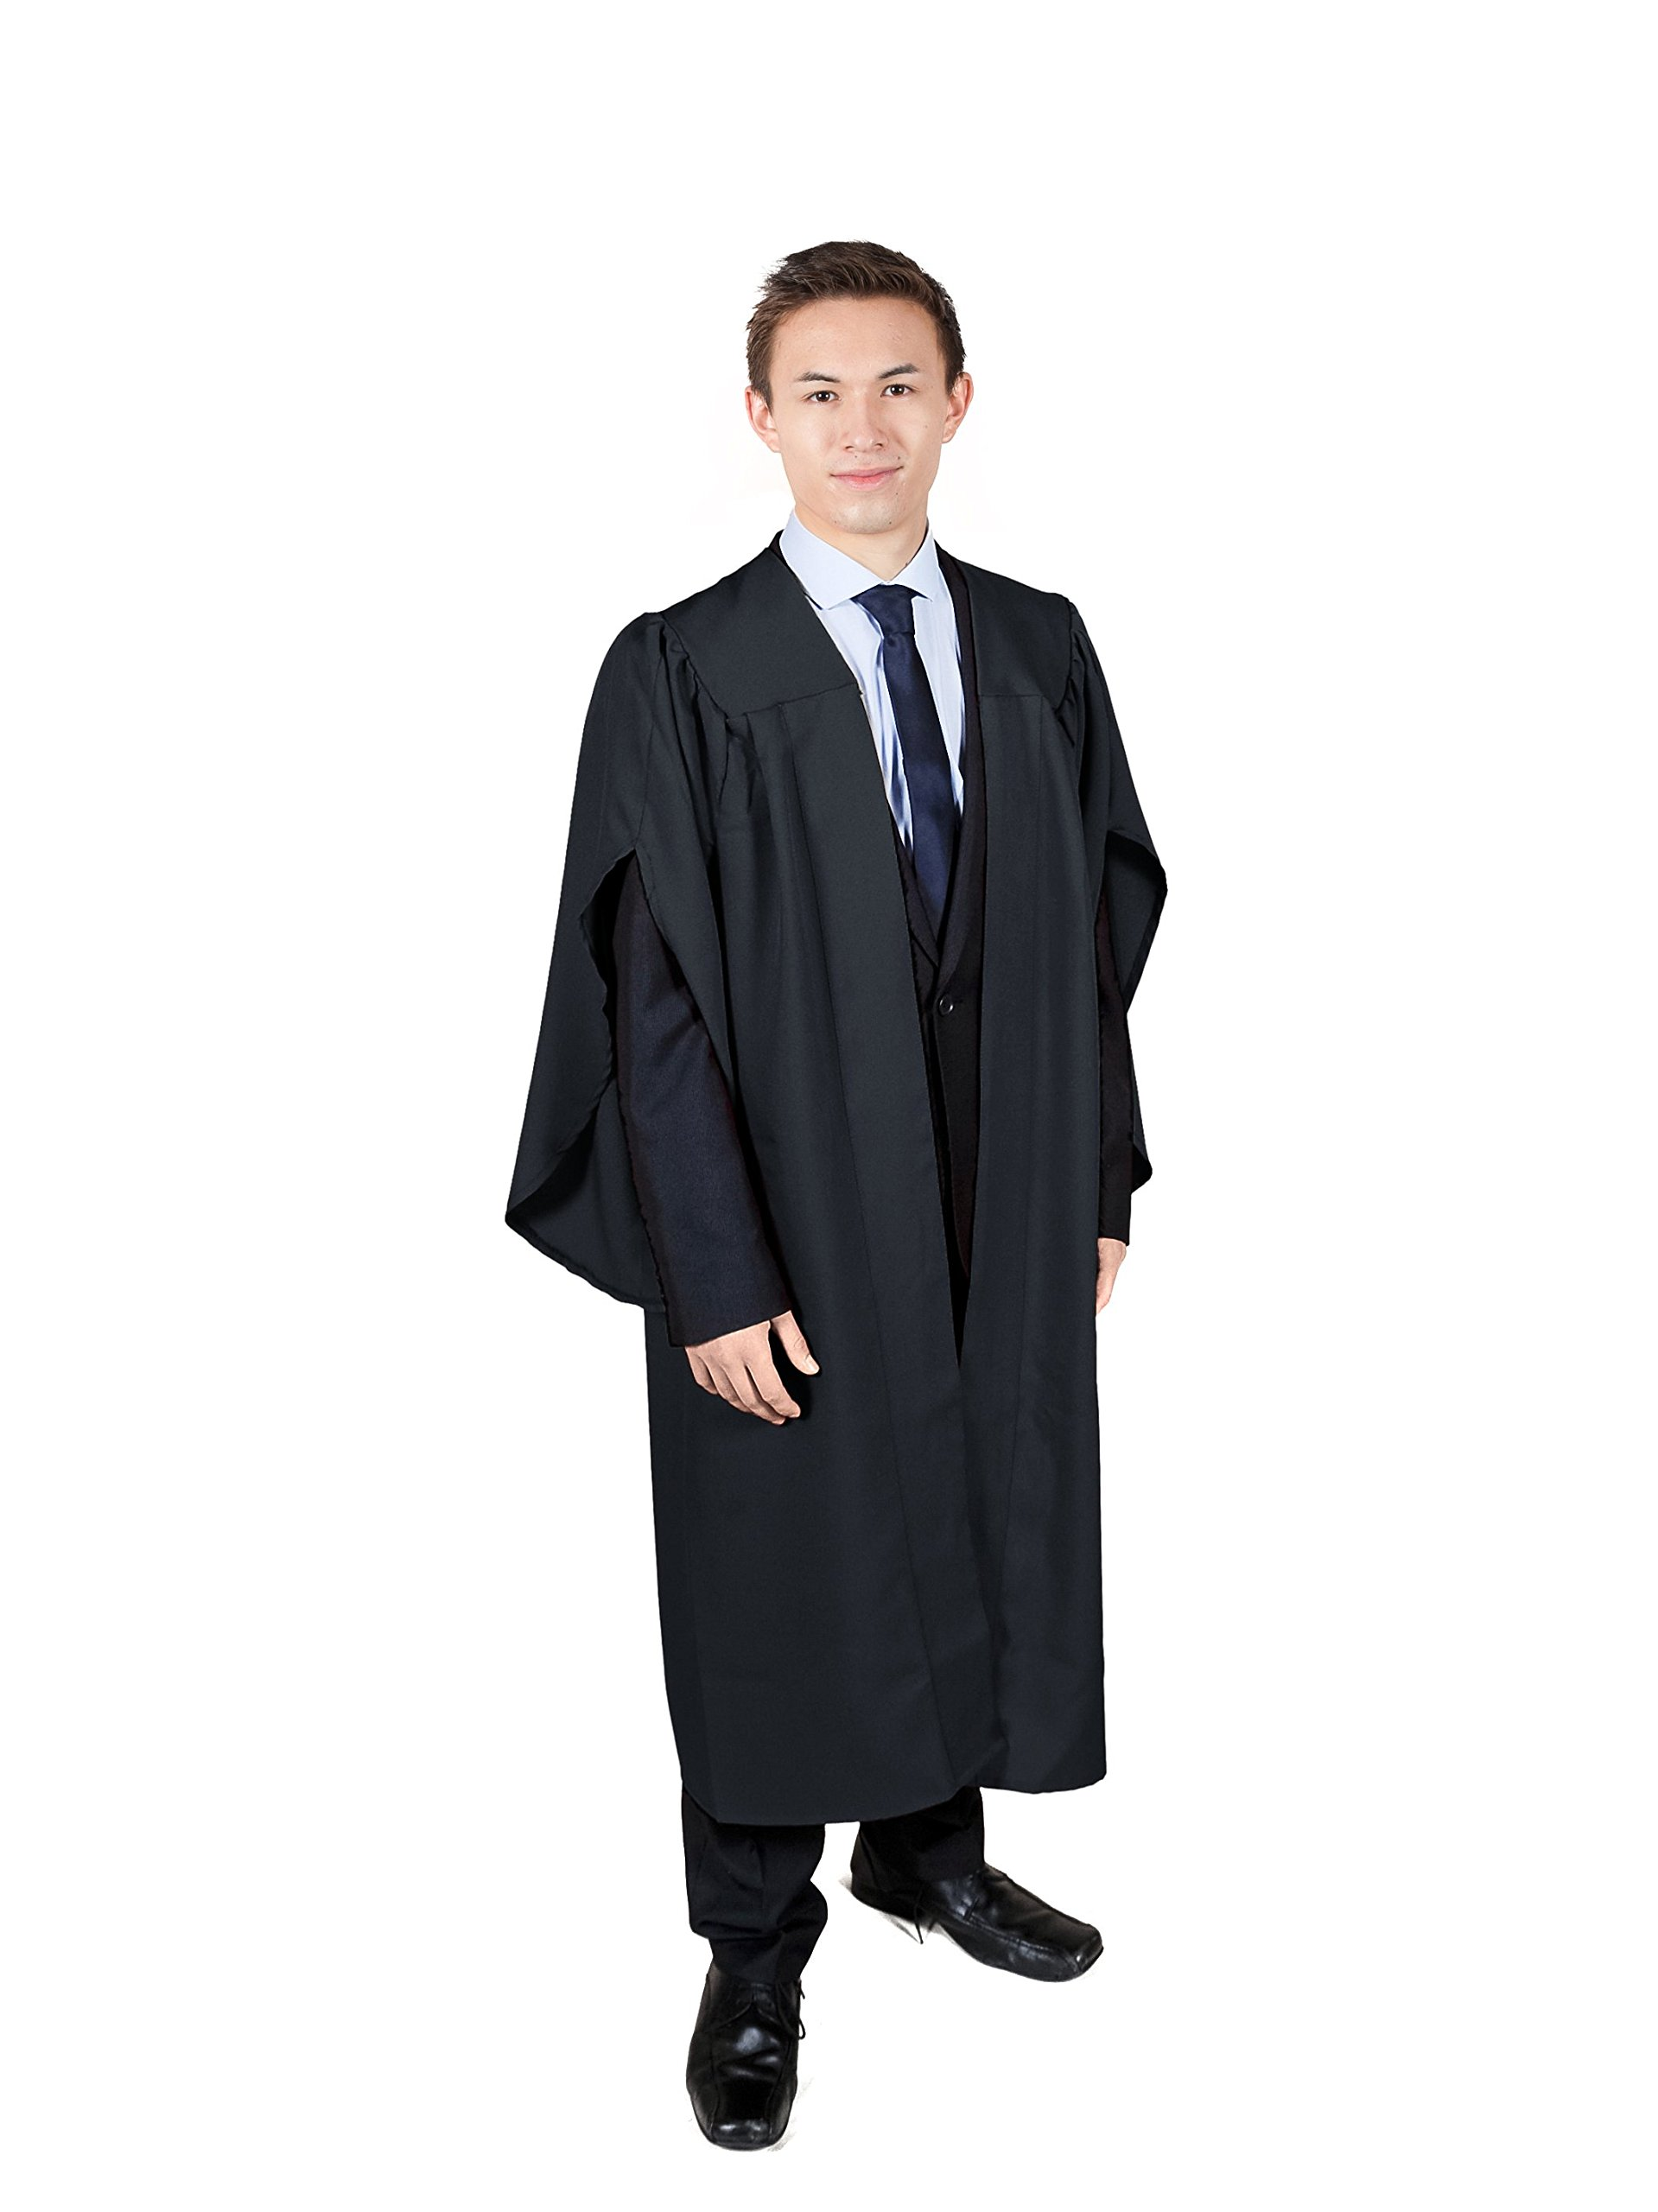 Graduation Attire Black Open Front Choir Robe (Height 5'6-5'8)